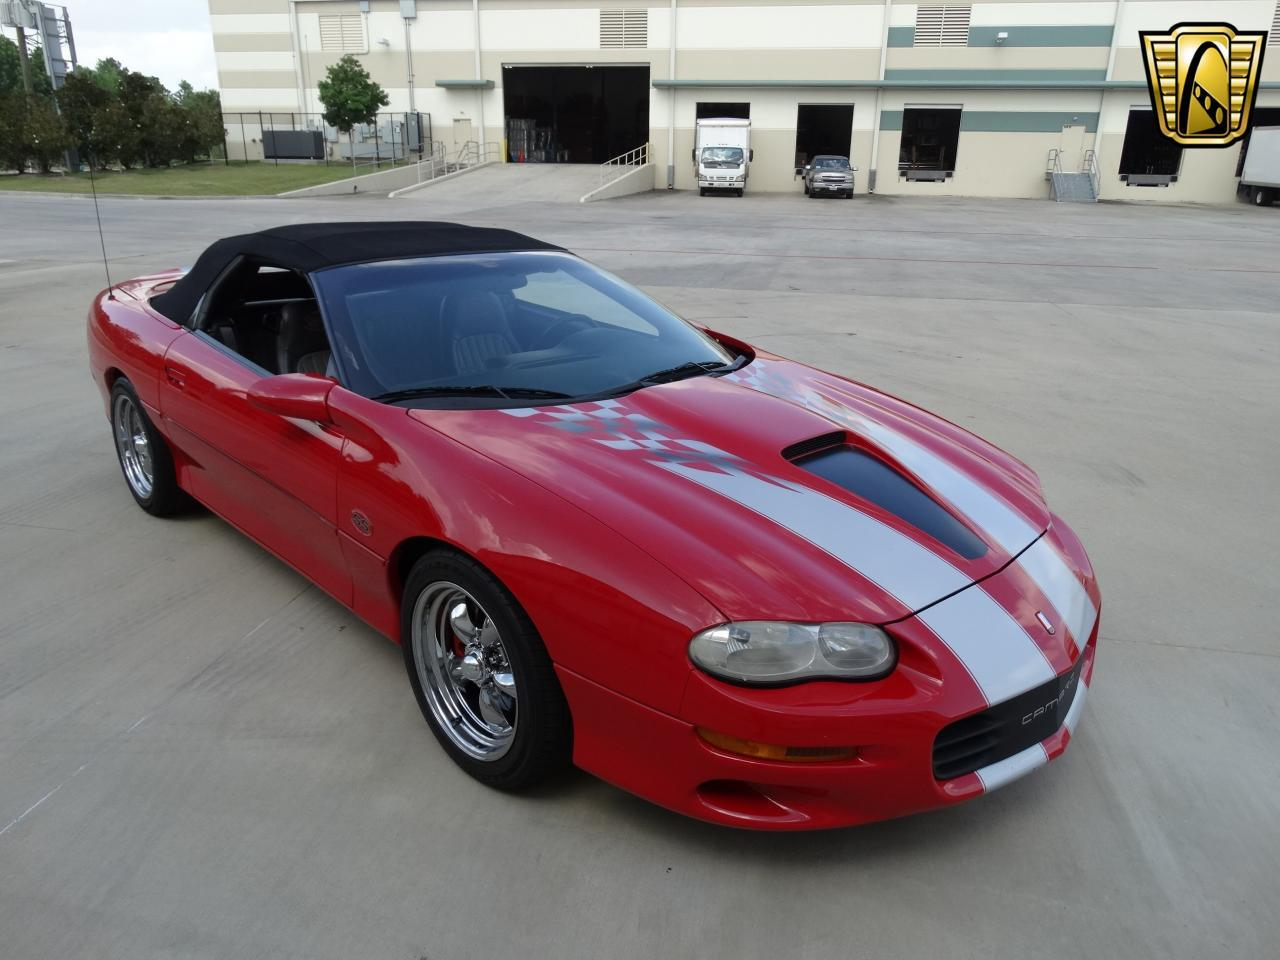 Large Picture of '02 Chevrolet Camaro located in Texas - $15,595.00 Offered by Gateway Classic Cars - Houston - KEFD